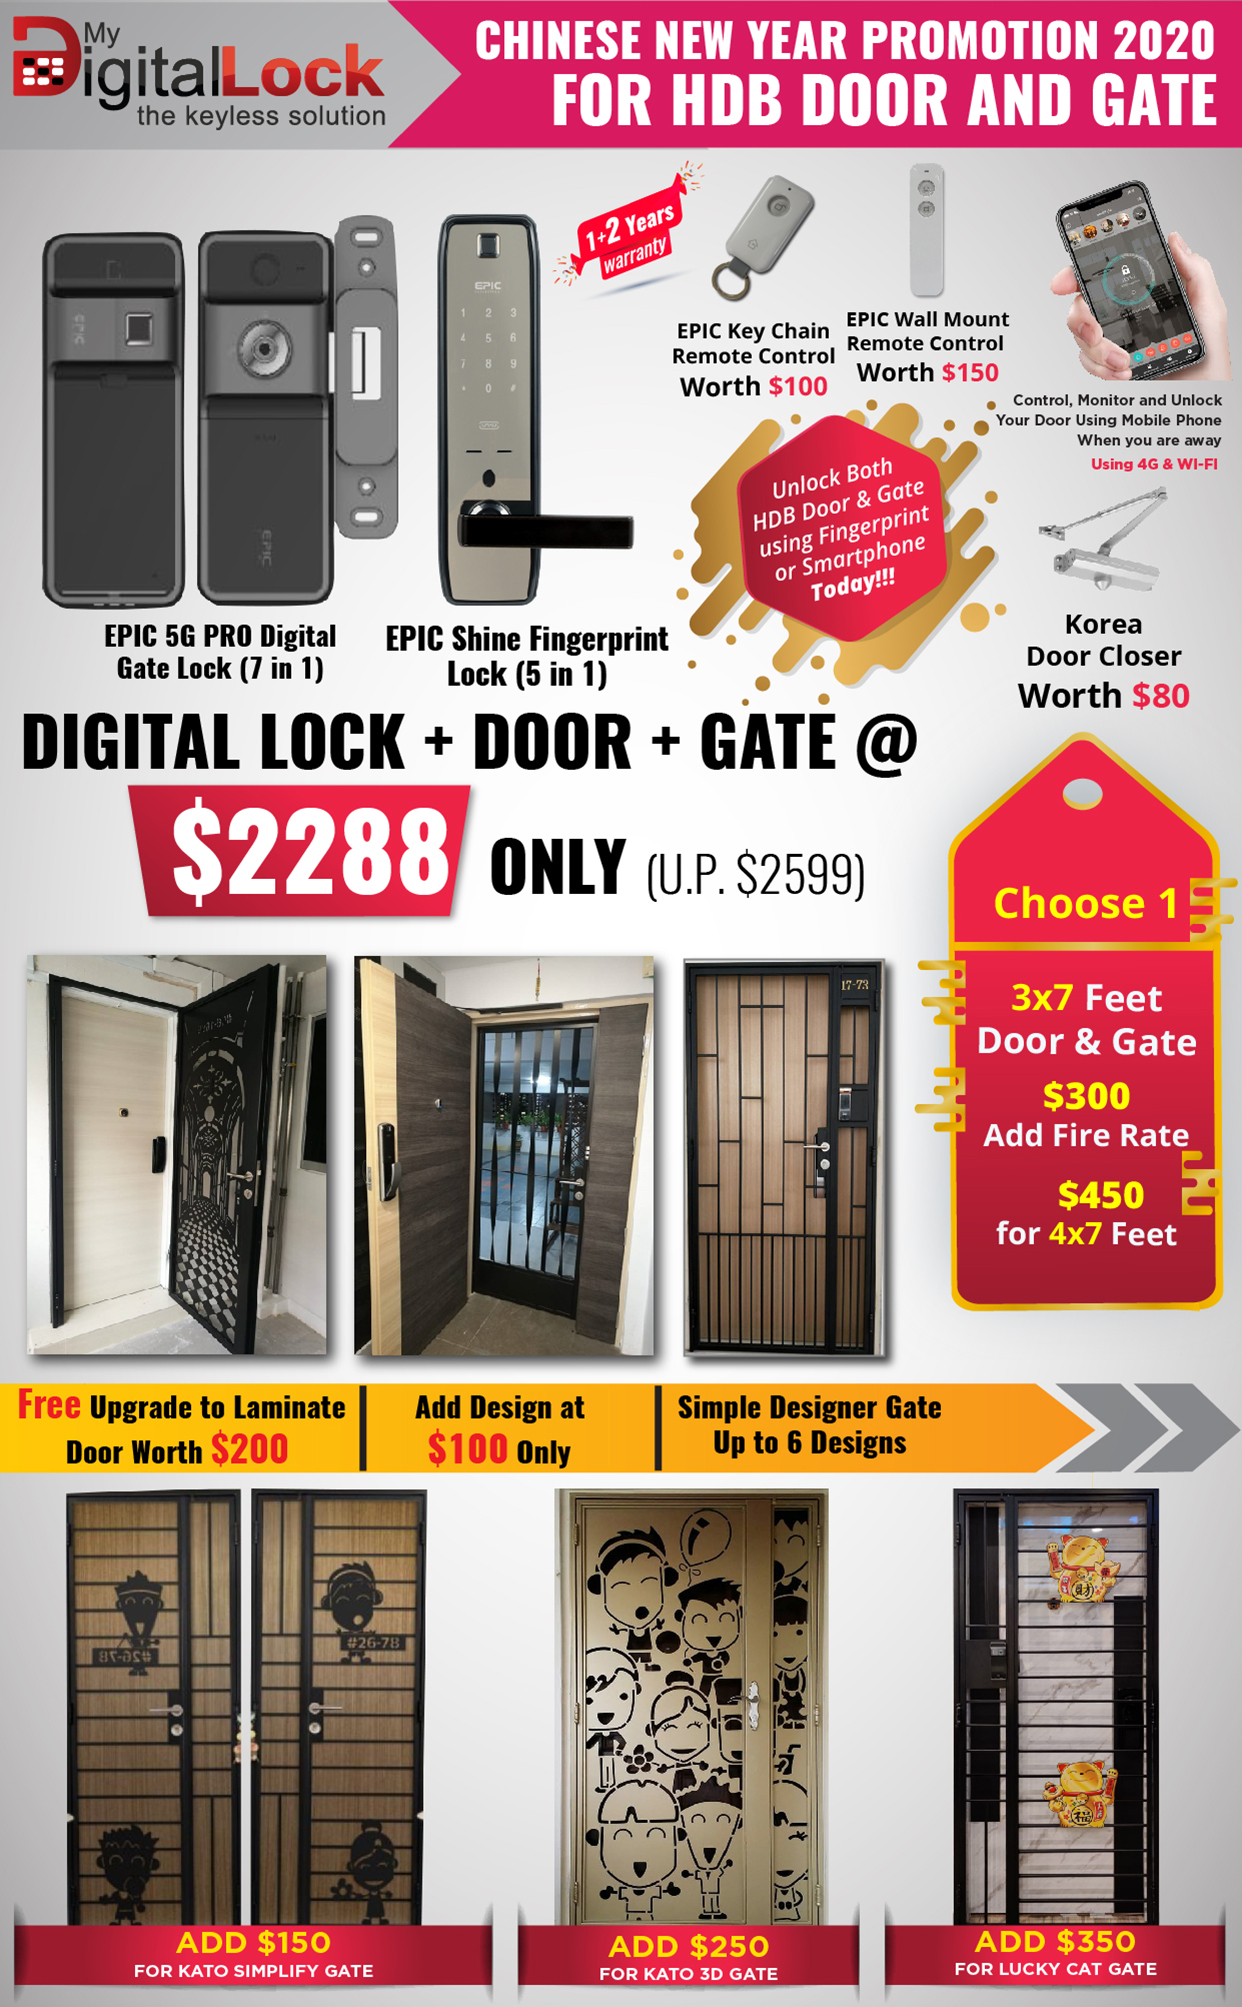 EPIC-5G-Pro-Digital-Gate-Lock